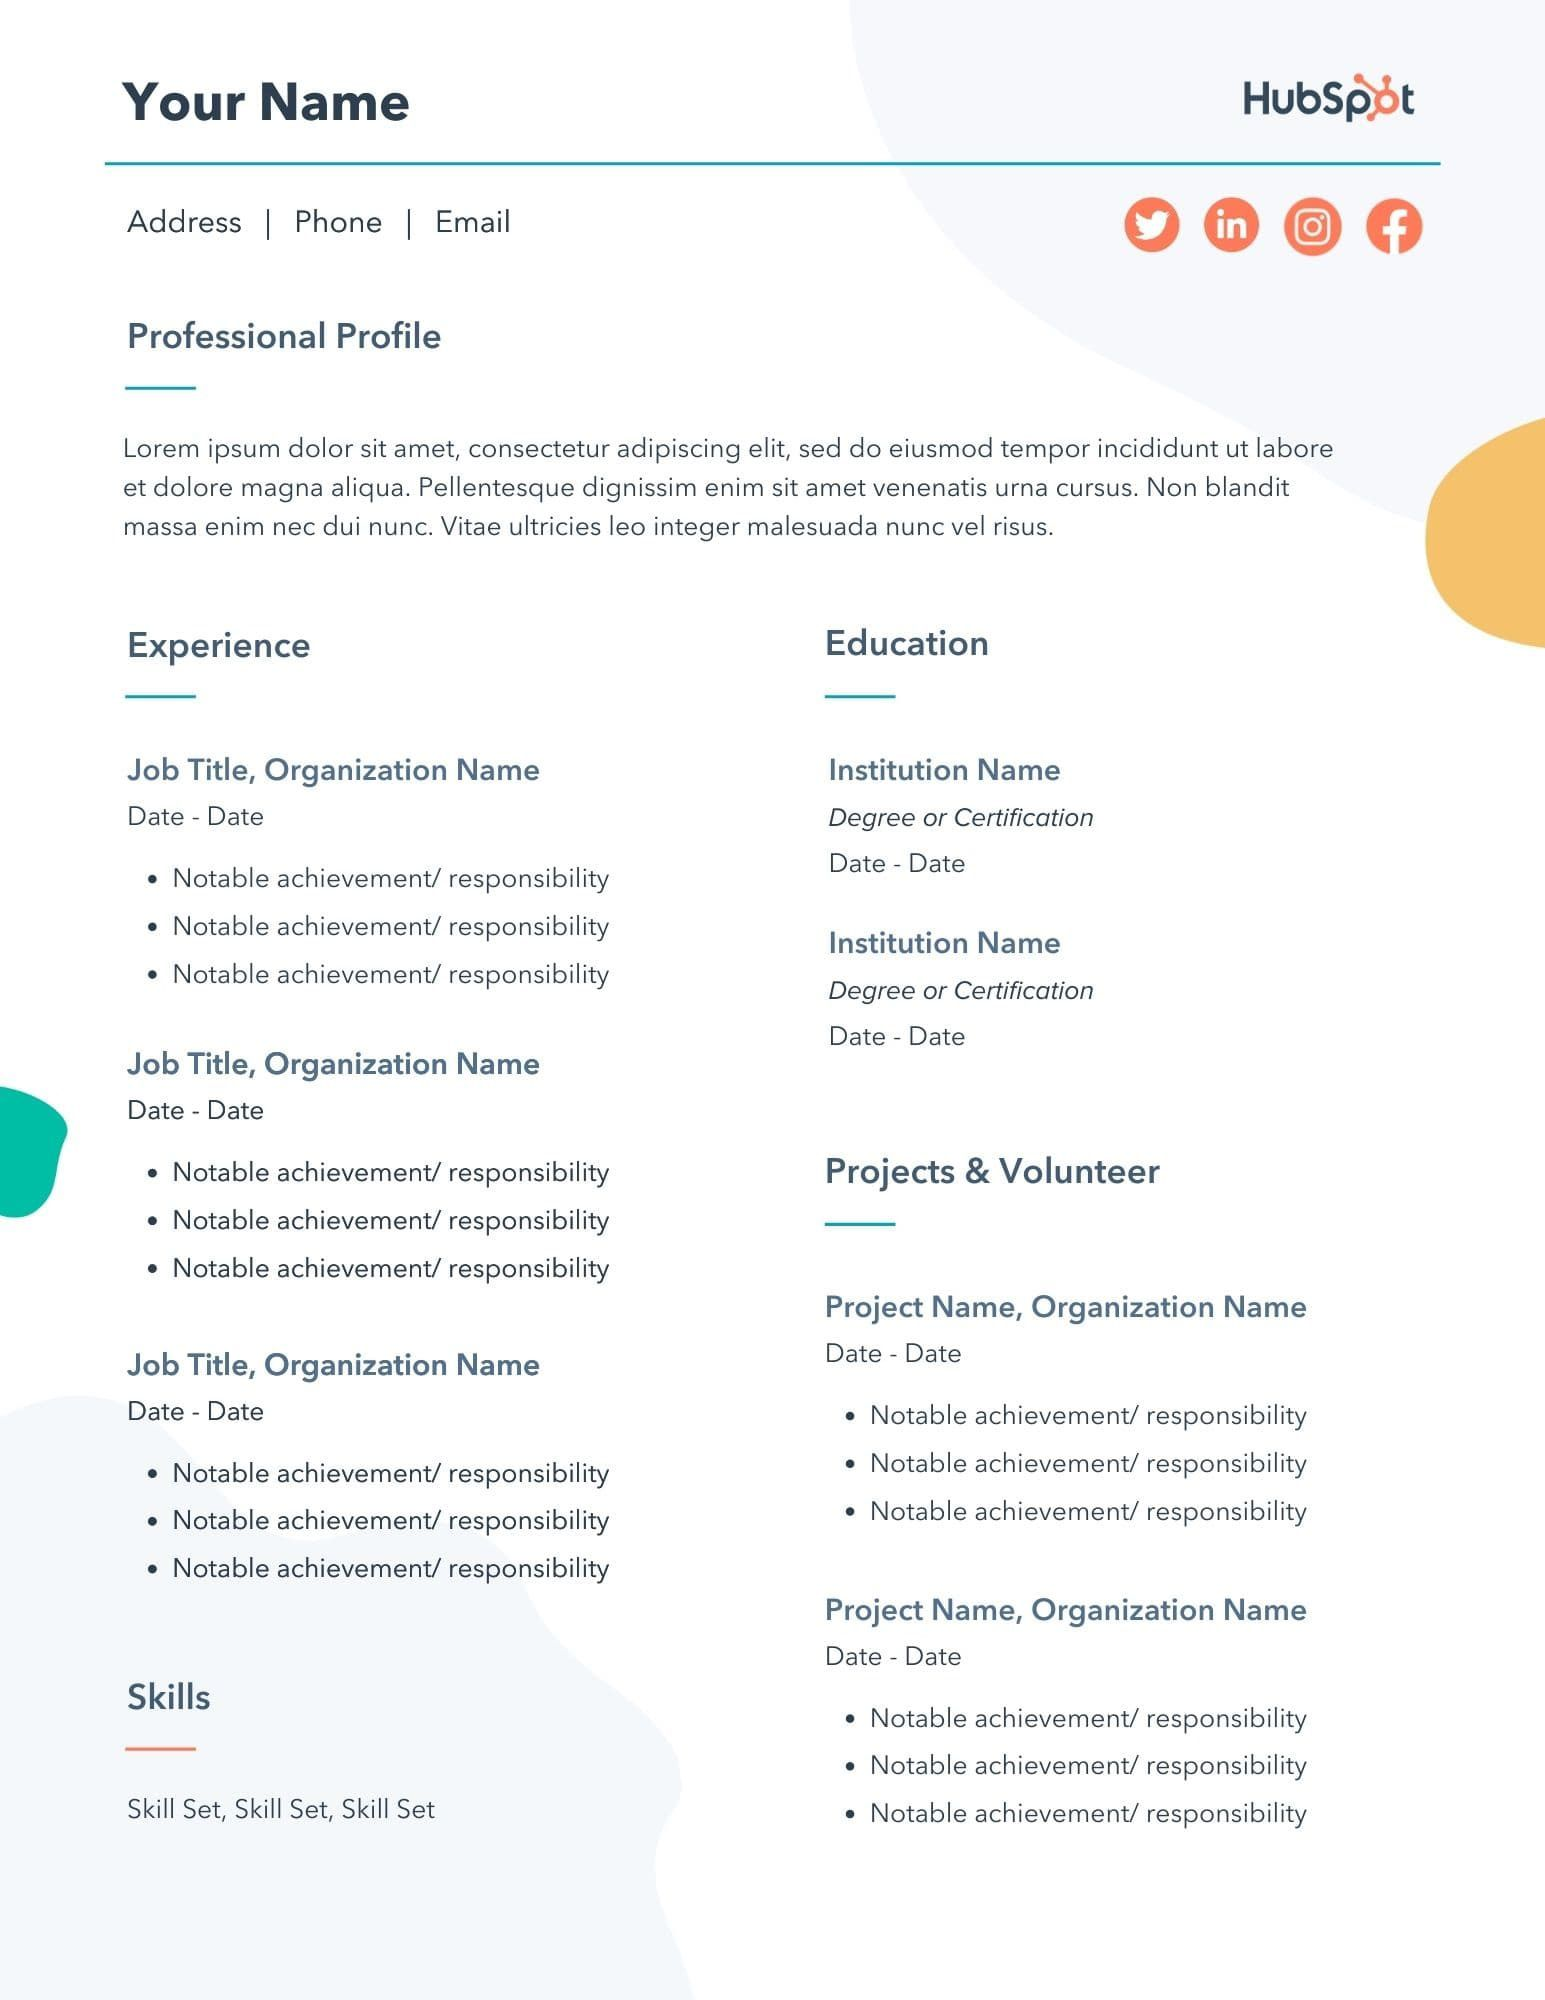 008 Impressive How To Create A Resume Template In Word 2020 Inspiration Full